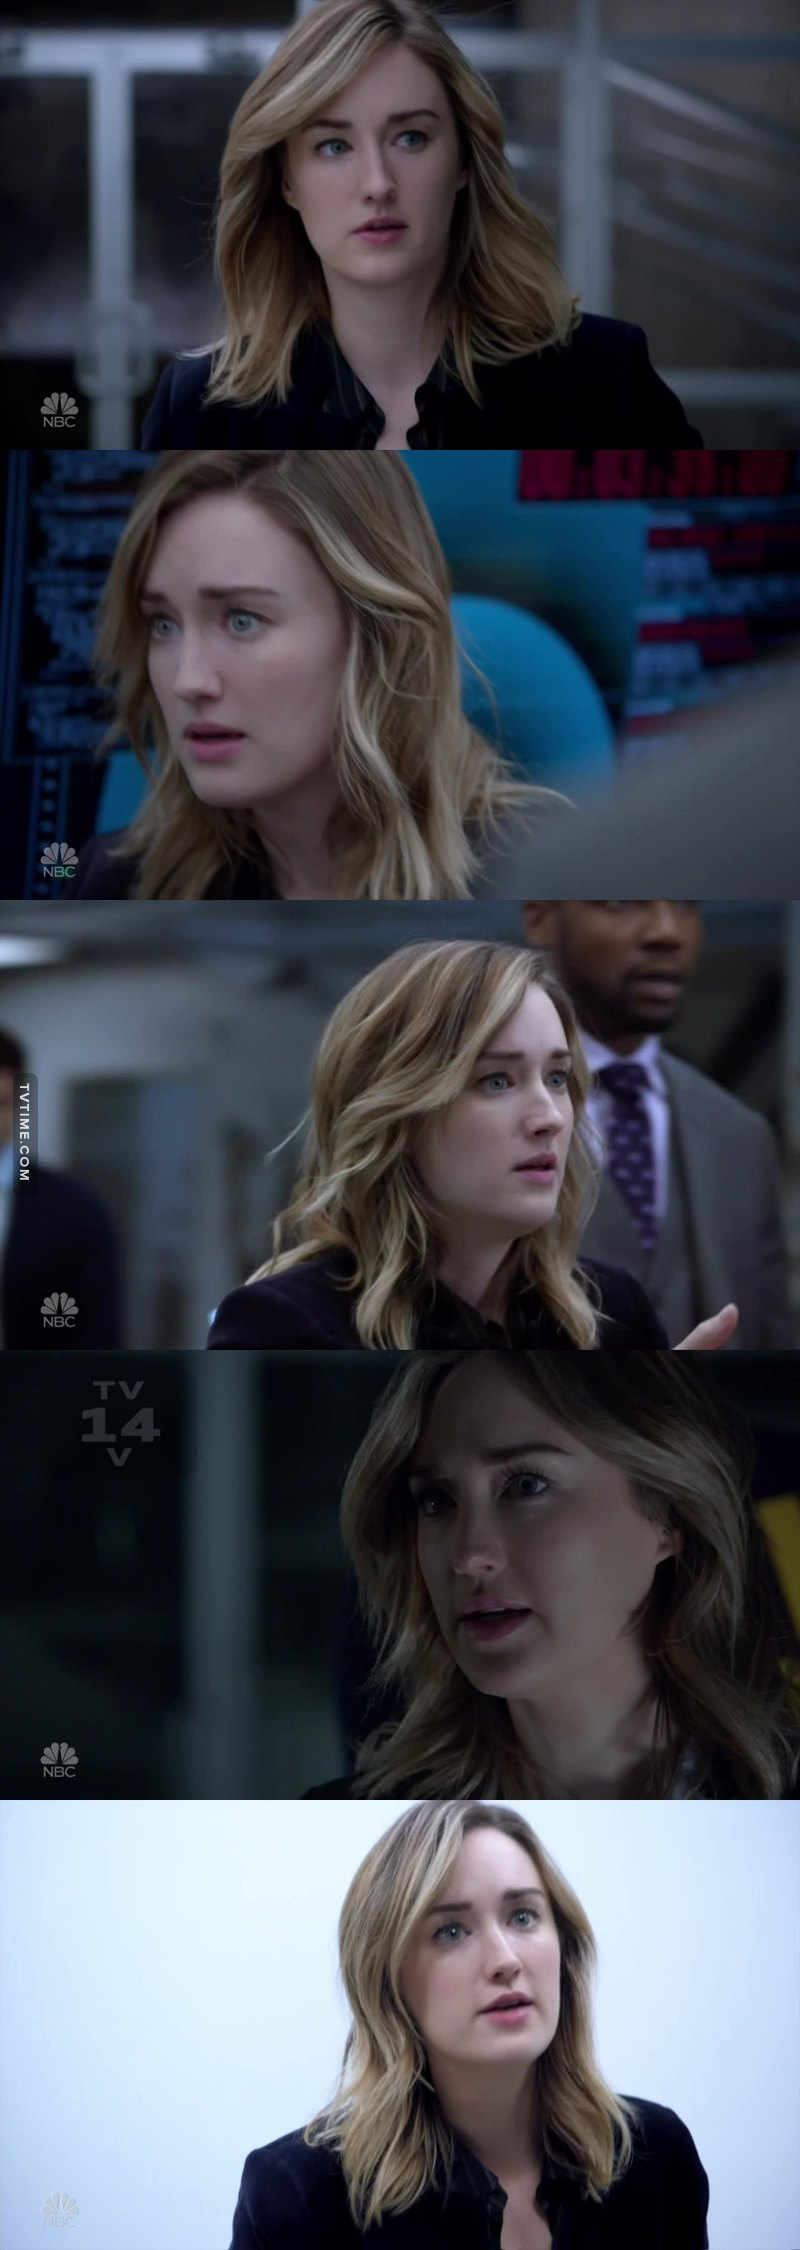 I don't know about you guys, but for me Patterson is the best character! #TeamPatterson